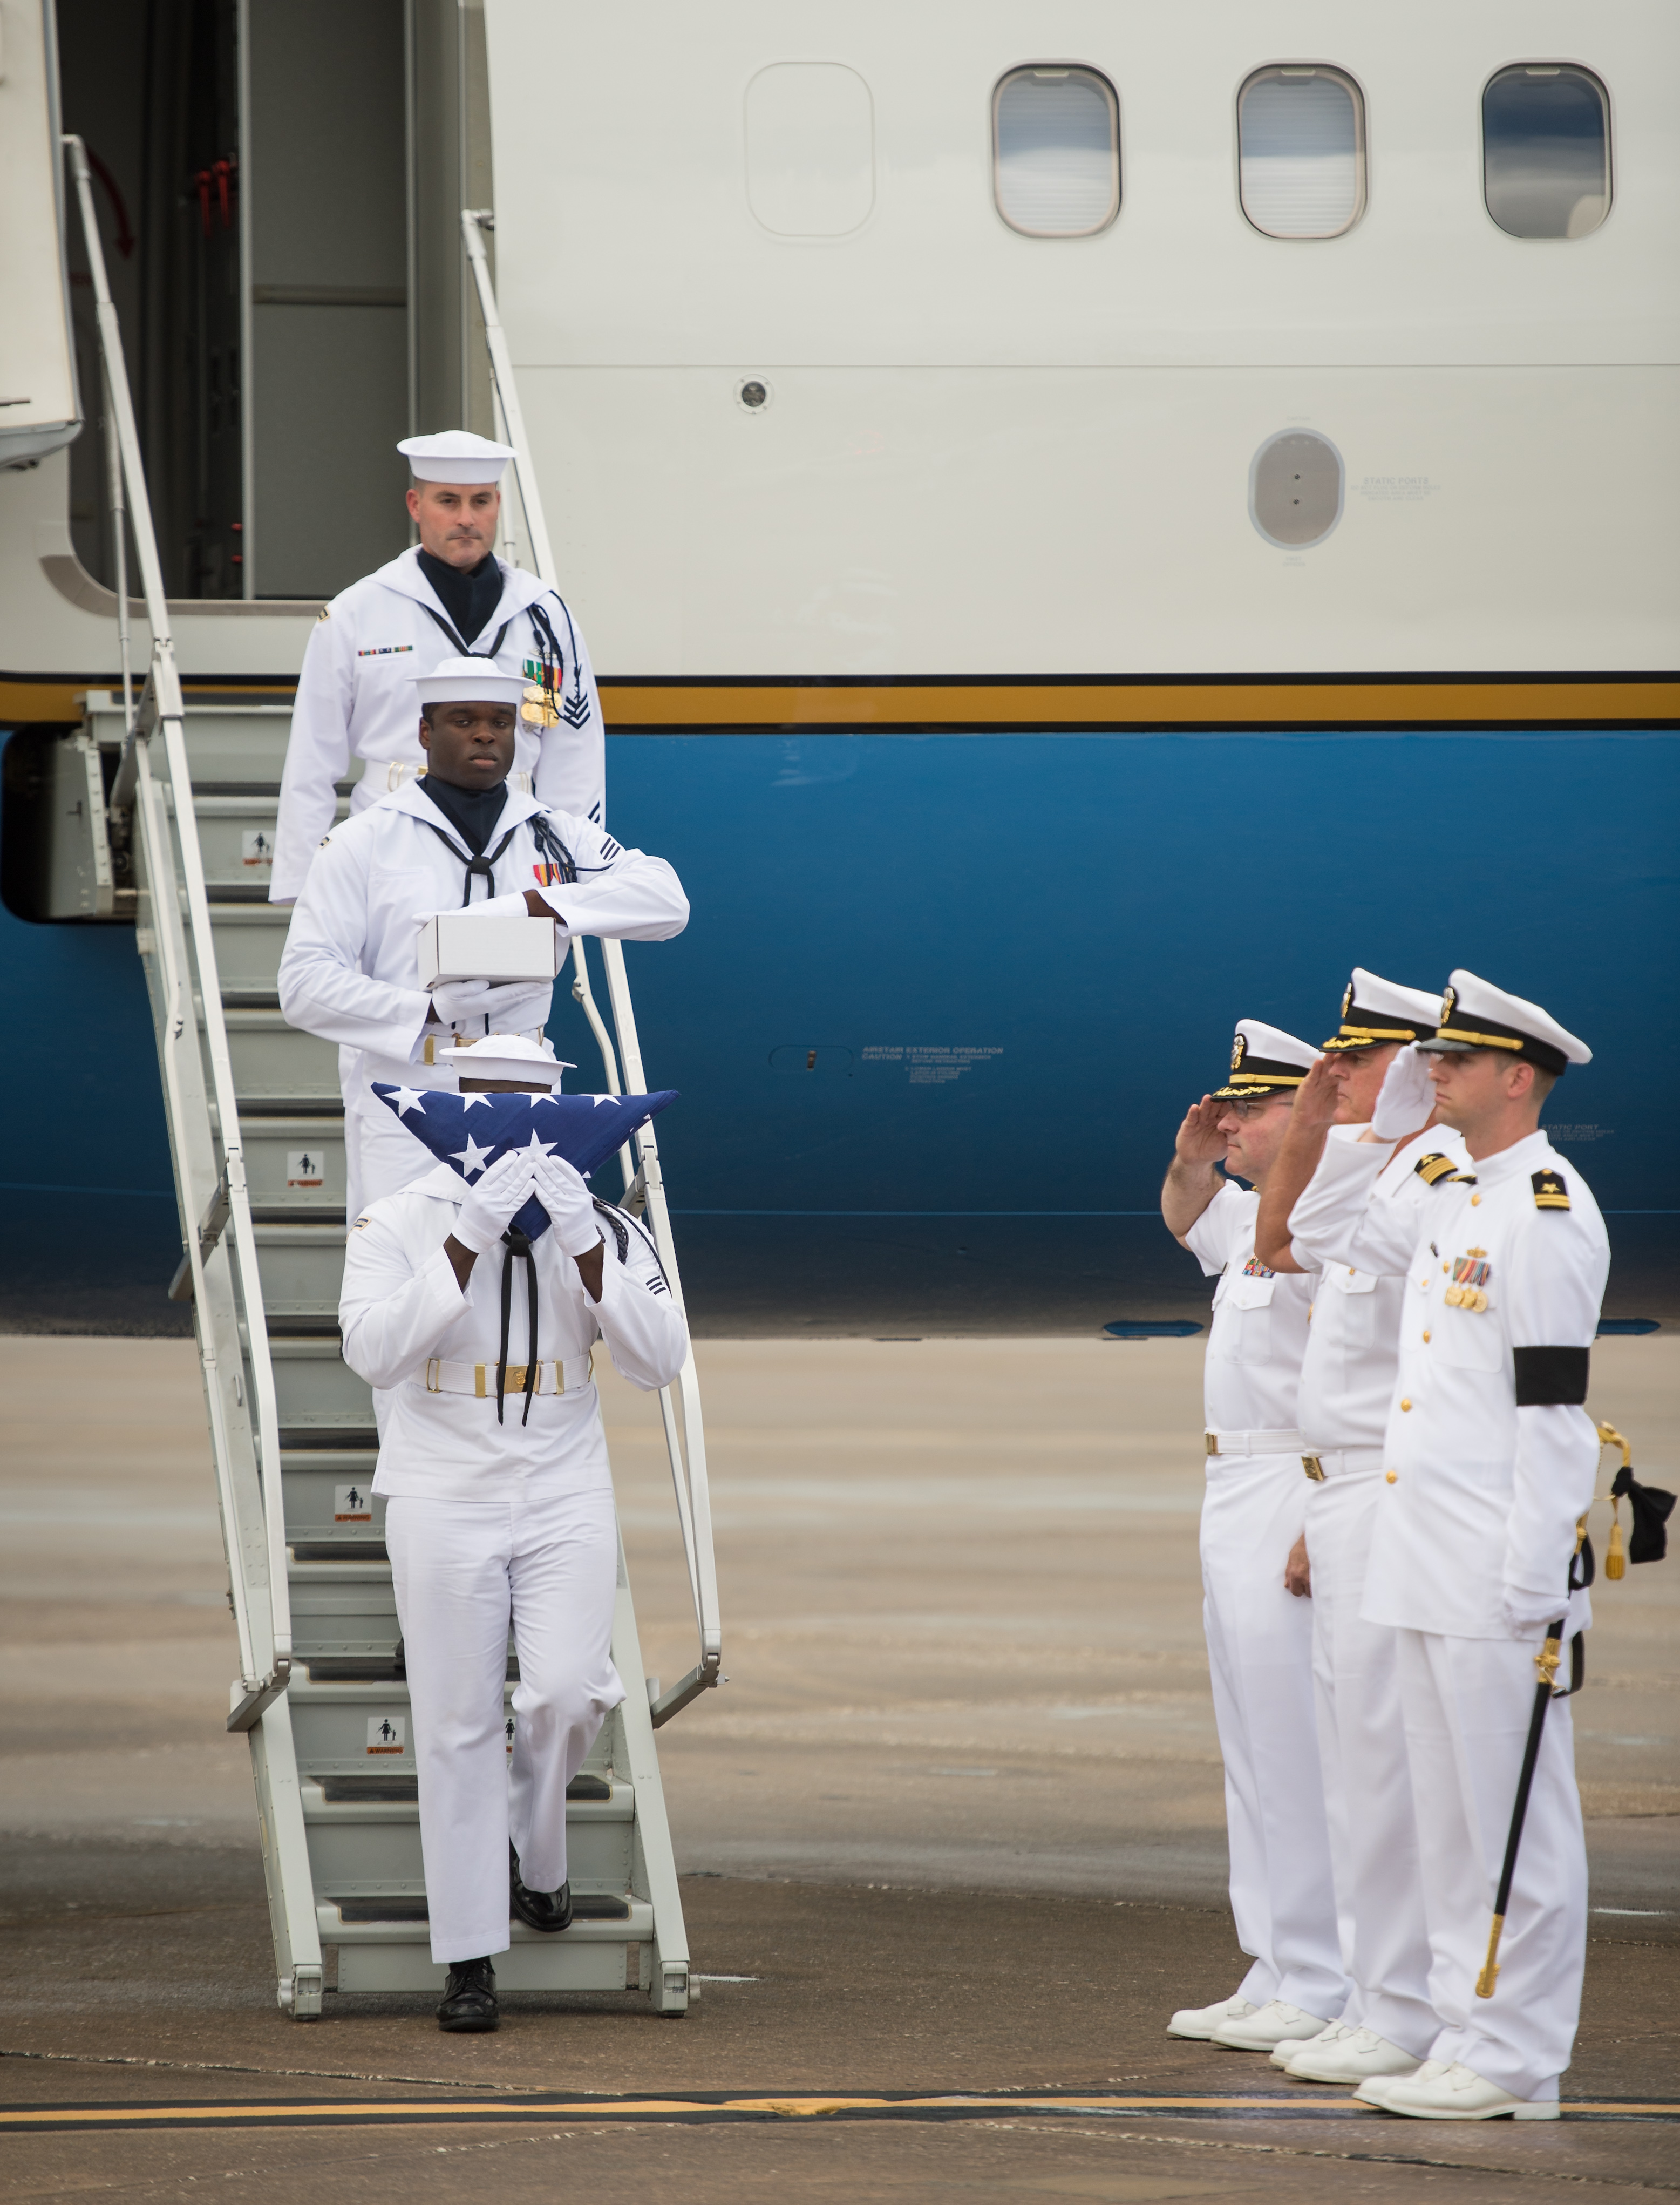 neil armstrong burial - photo #17